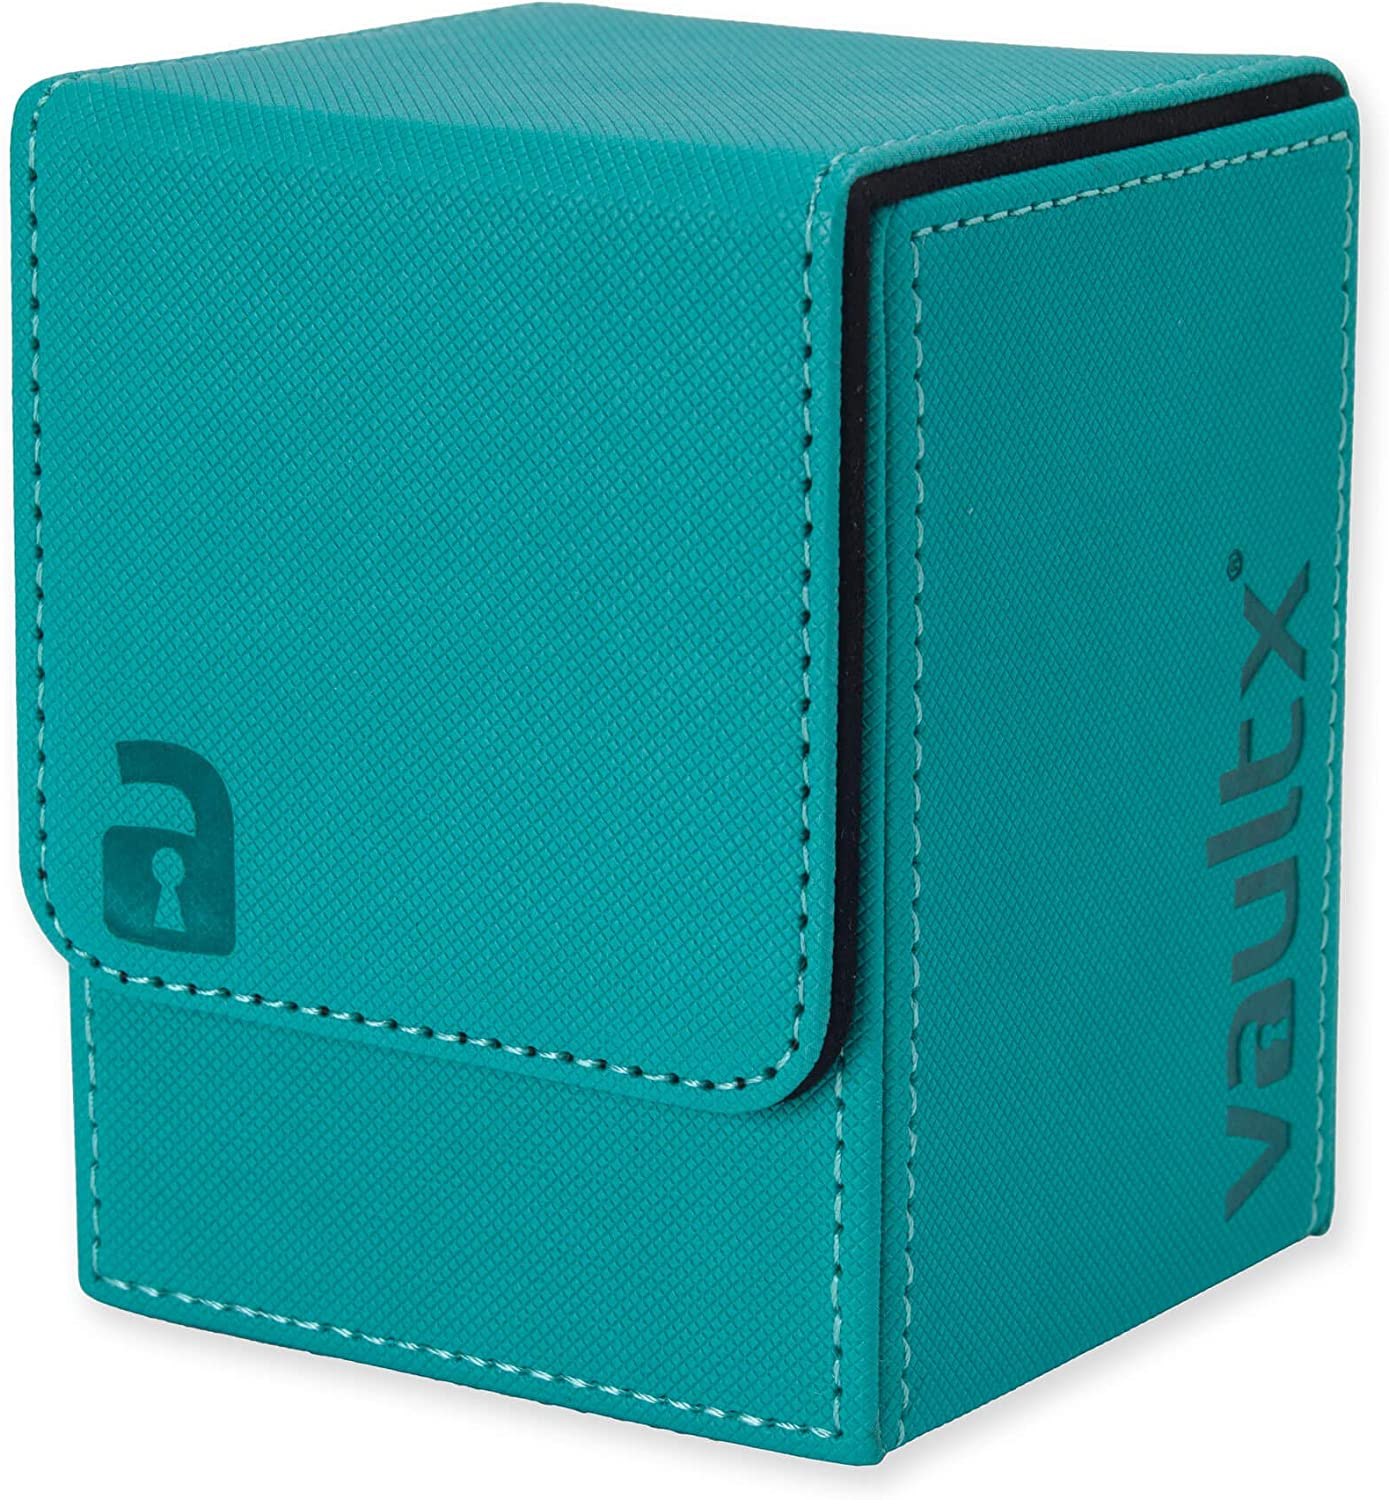 Large Size for 100+ Sleeved Cards Vault X /® Premium eXo-Tec /® Deck Box Blue PVC Free Card Holder for TCG